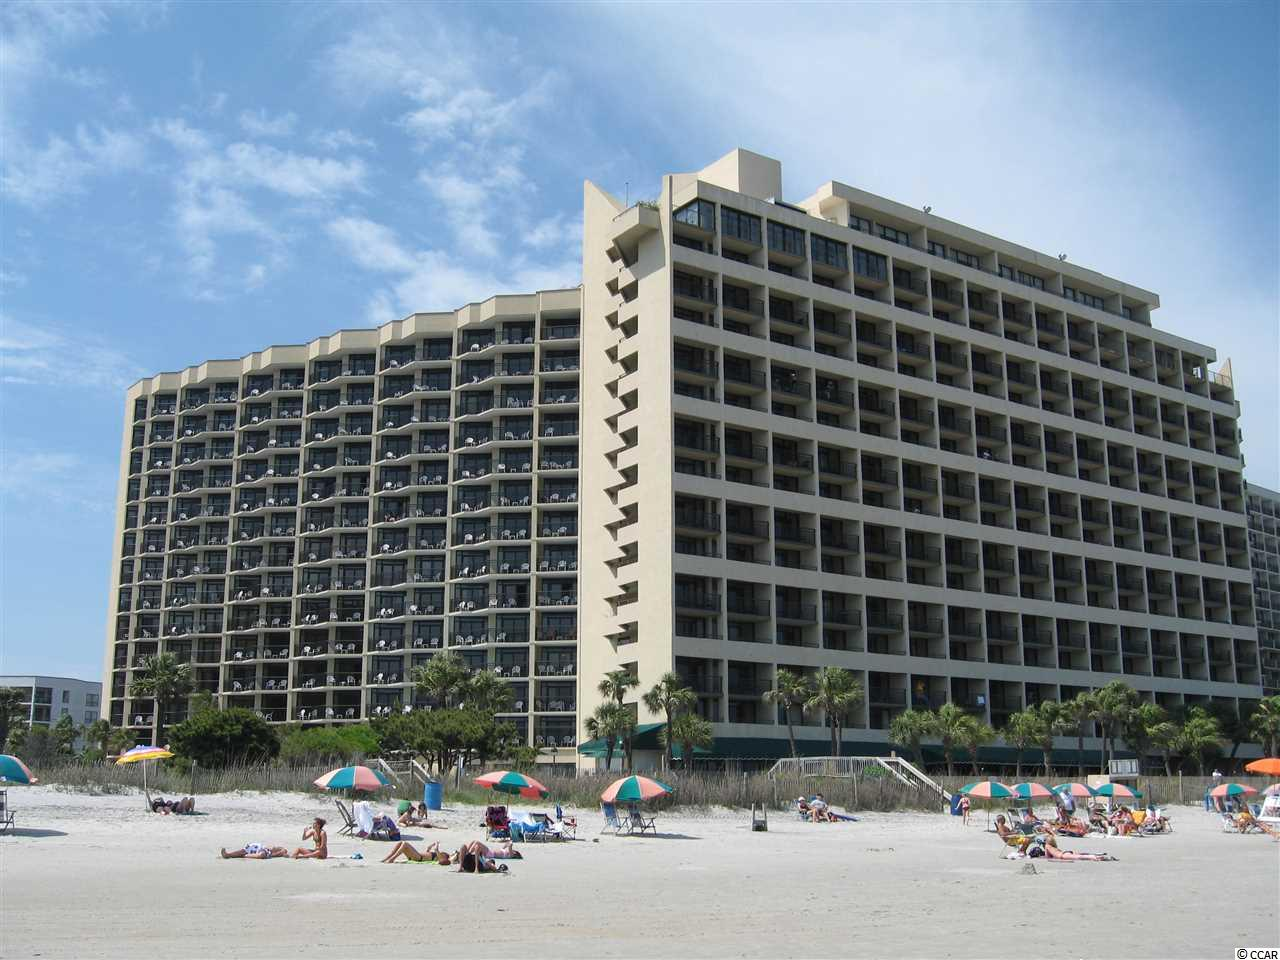 Ocean Front Condo in OCEAN REEF RESORT NORTH TOWER : Myrtle Beach South Carolina